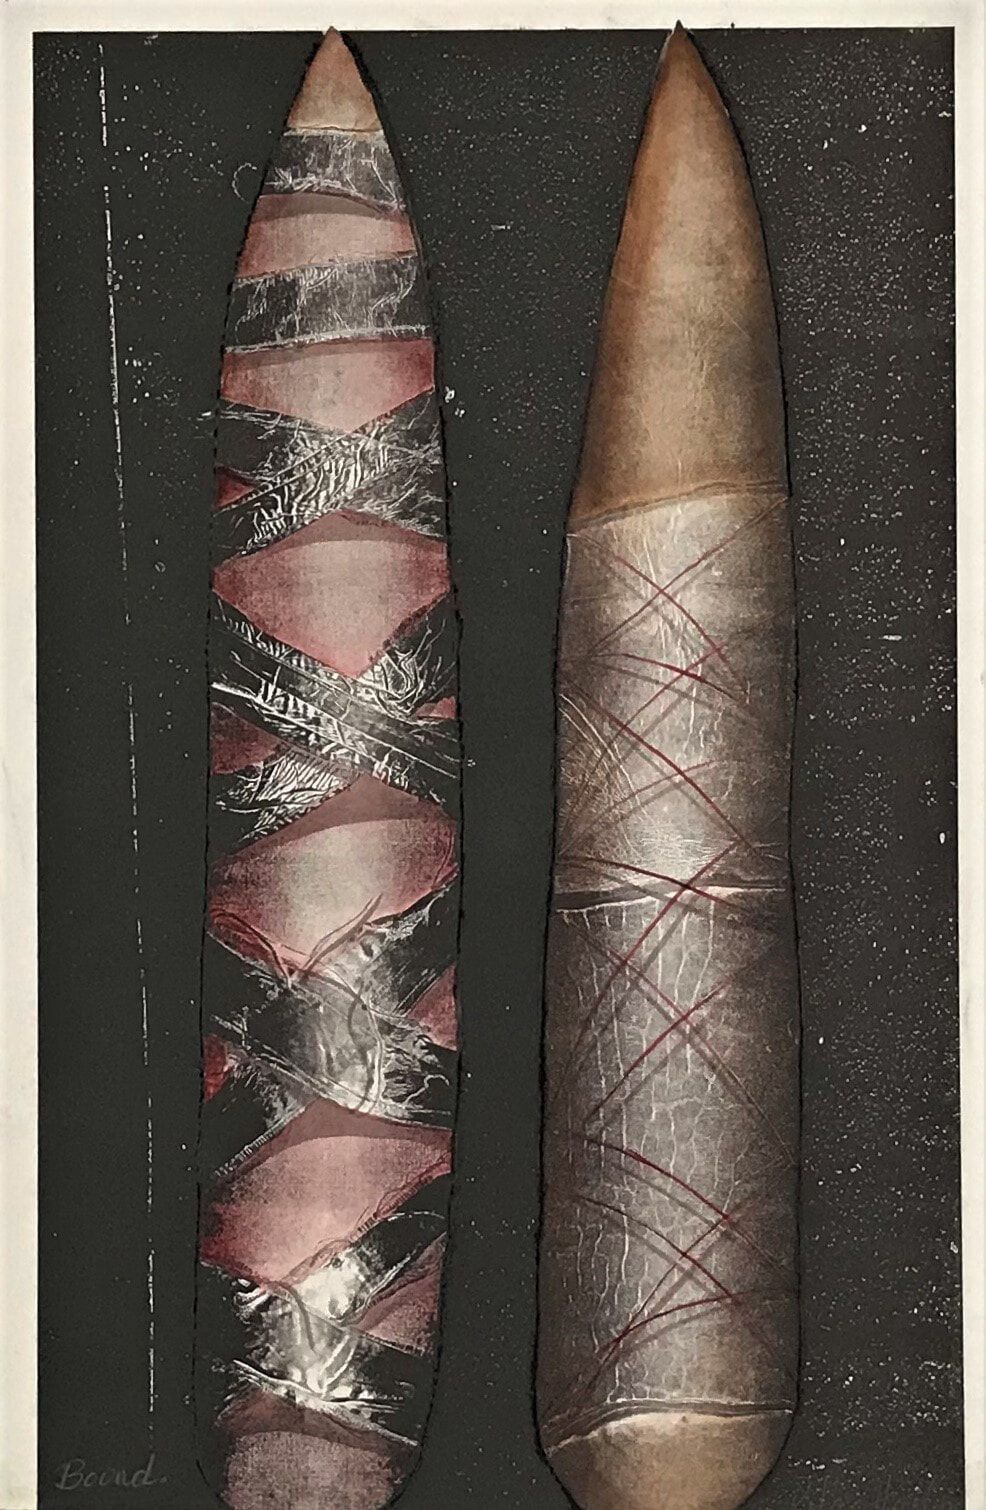 Bound 1991 mixed media (relief etching, collograph, watercolour) 76 x 59cm